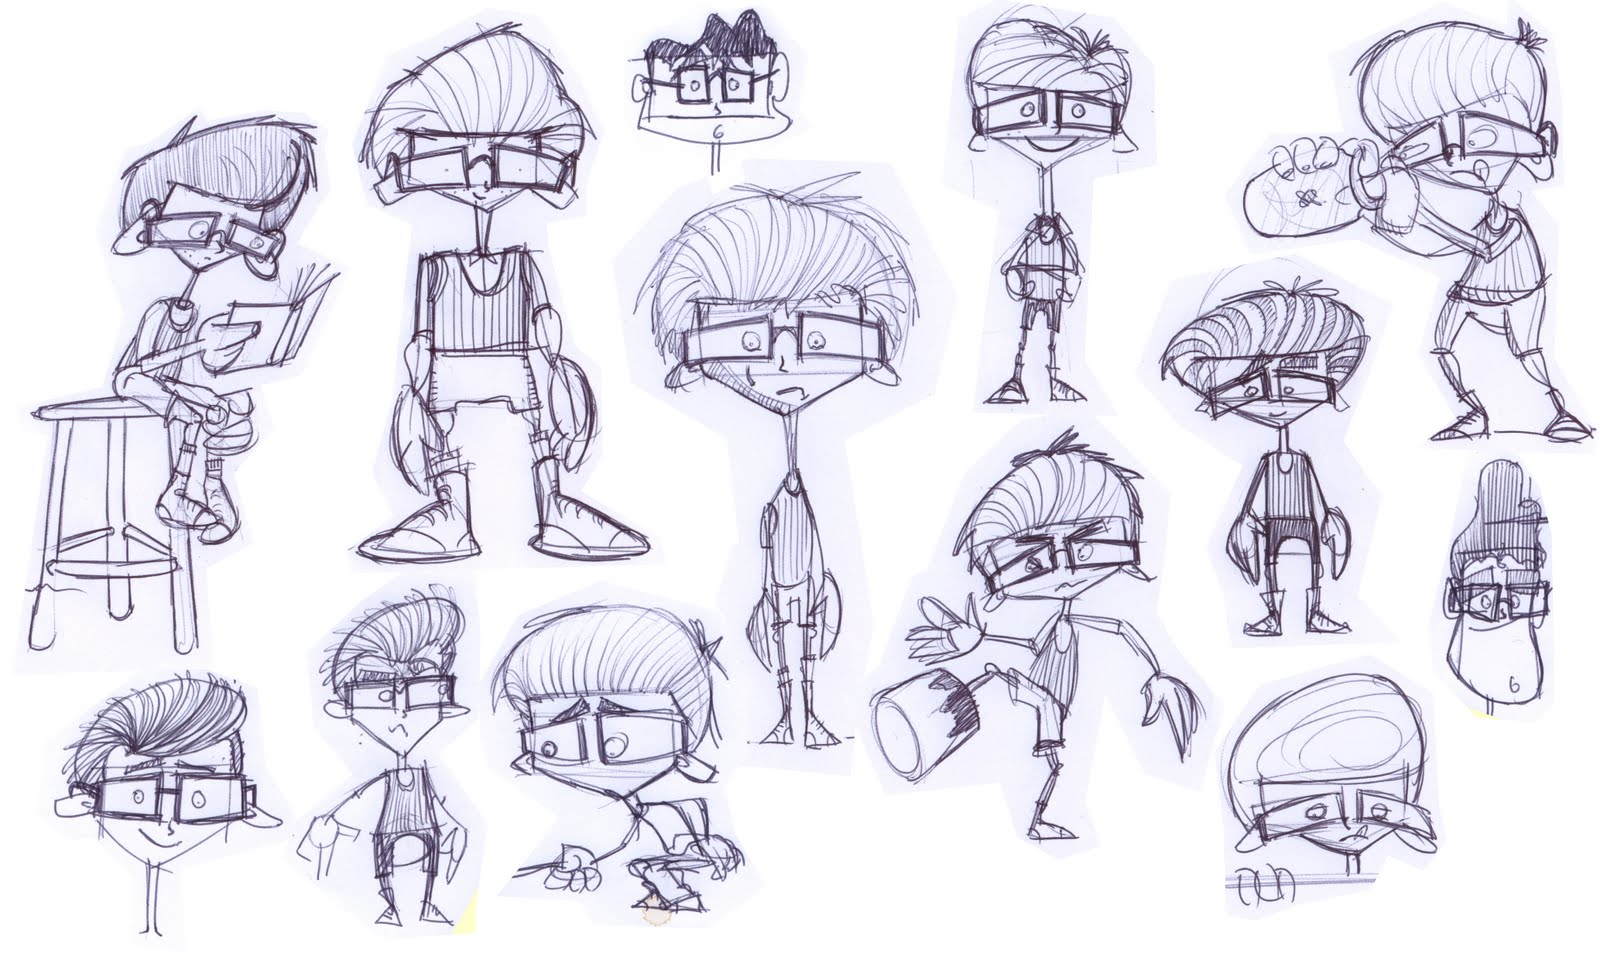 Character Design With Basic Shapes : A beekeeping tale early character designs